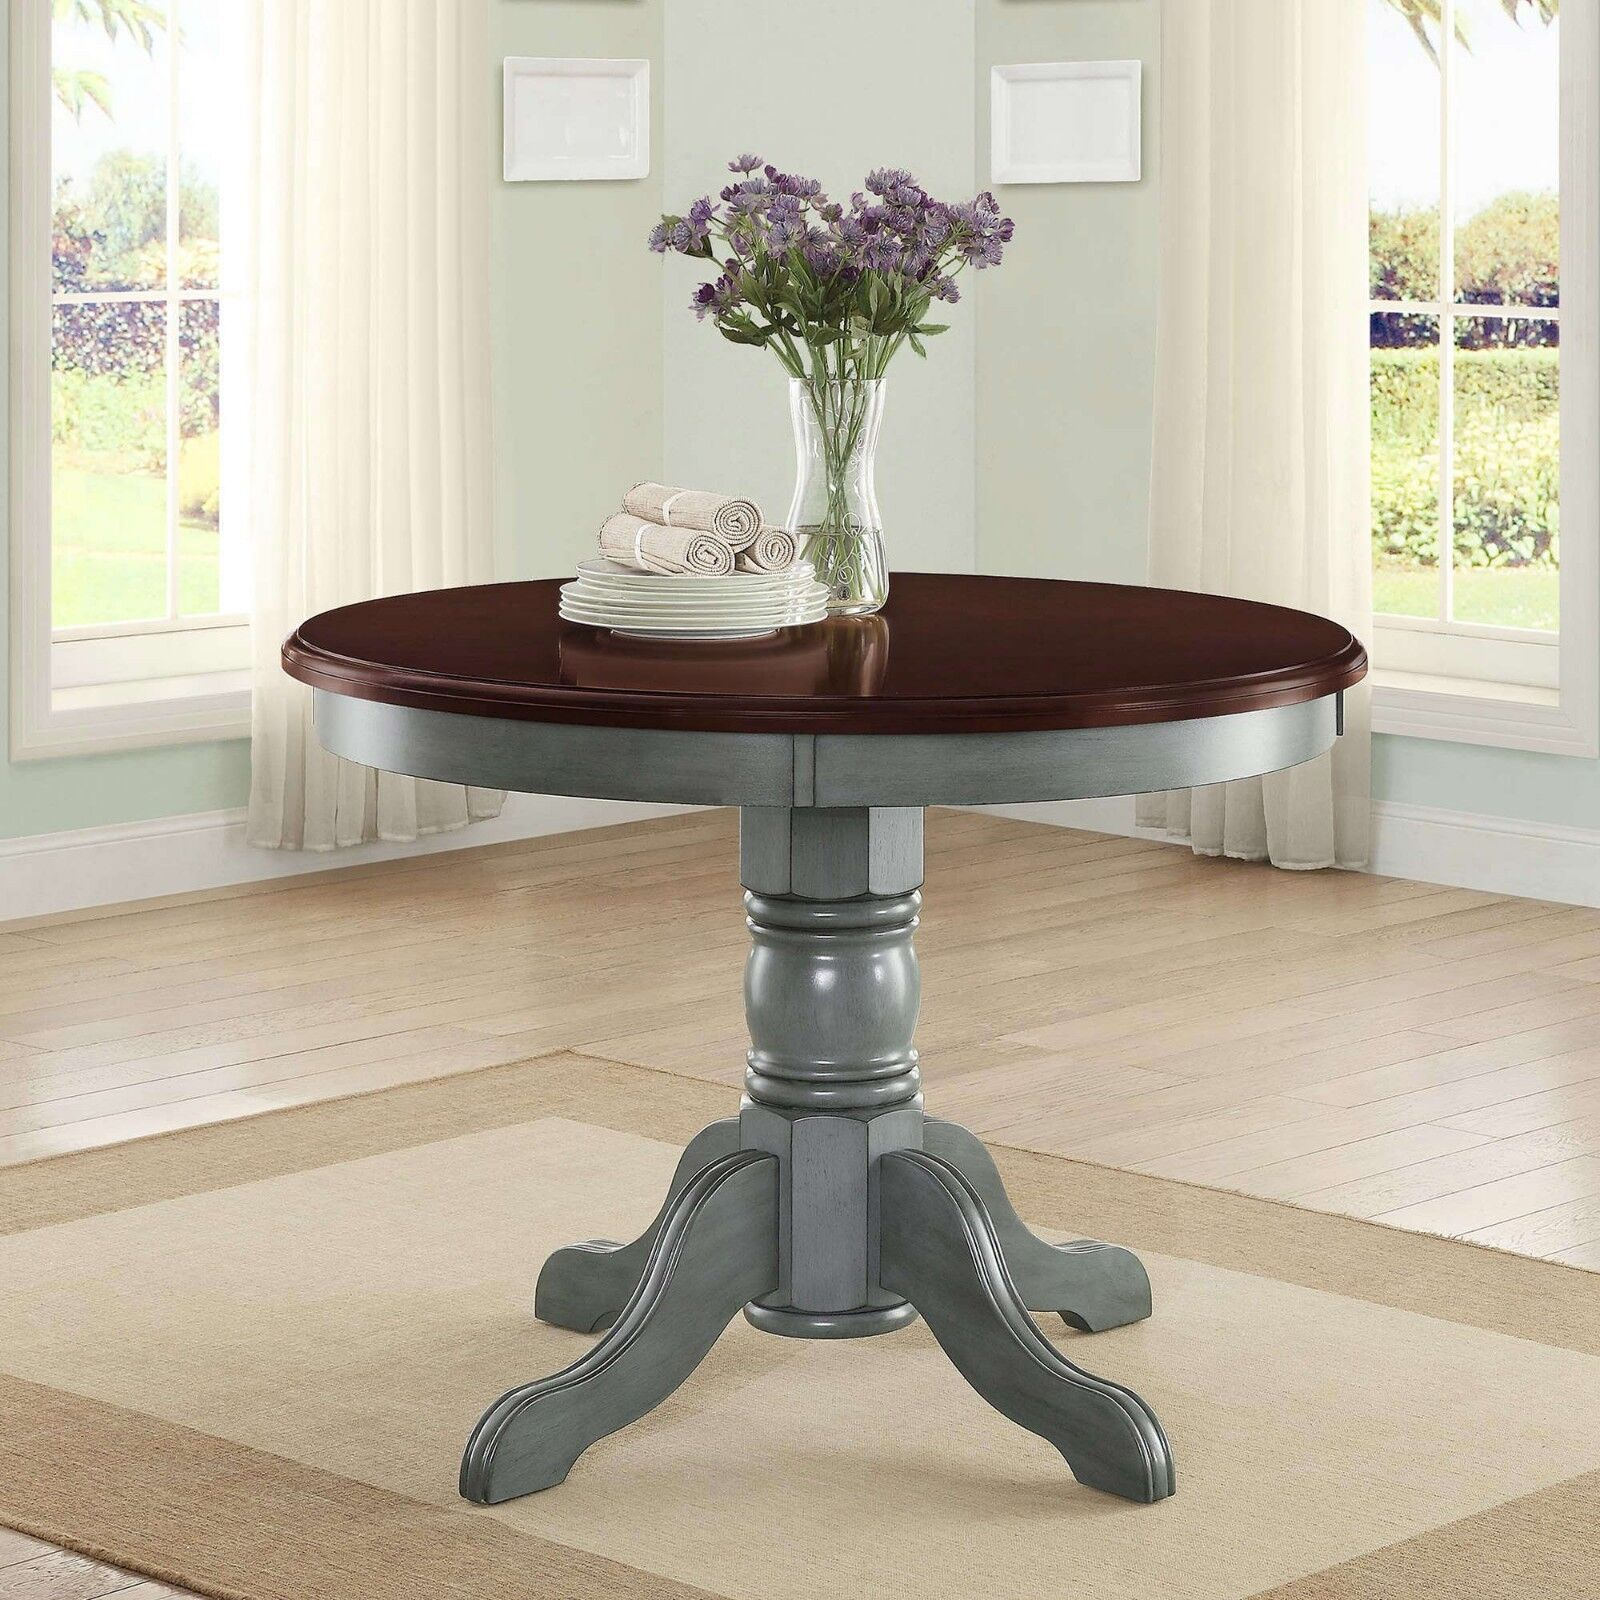 Image of: Round Dining Table Farmhouse Country Kitchen French Farm Furniture 42 Inch Sage 619775414884 Ebay